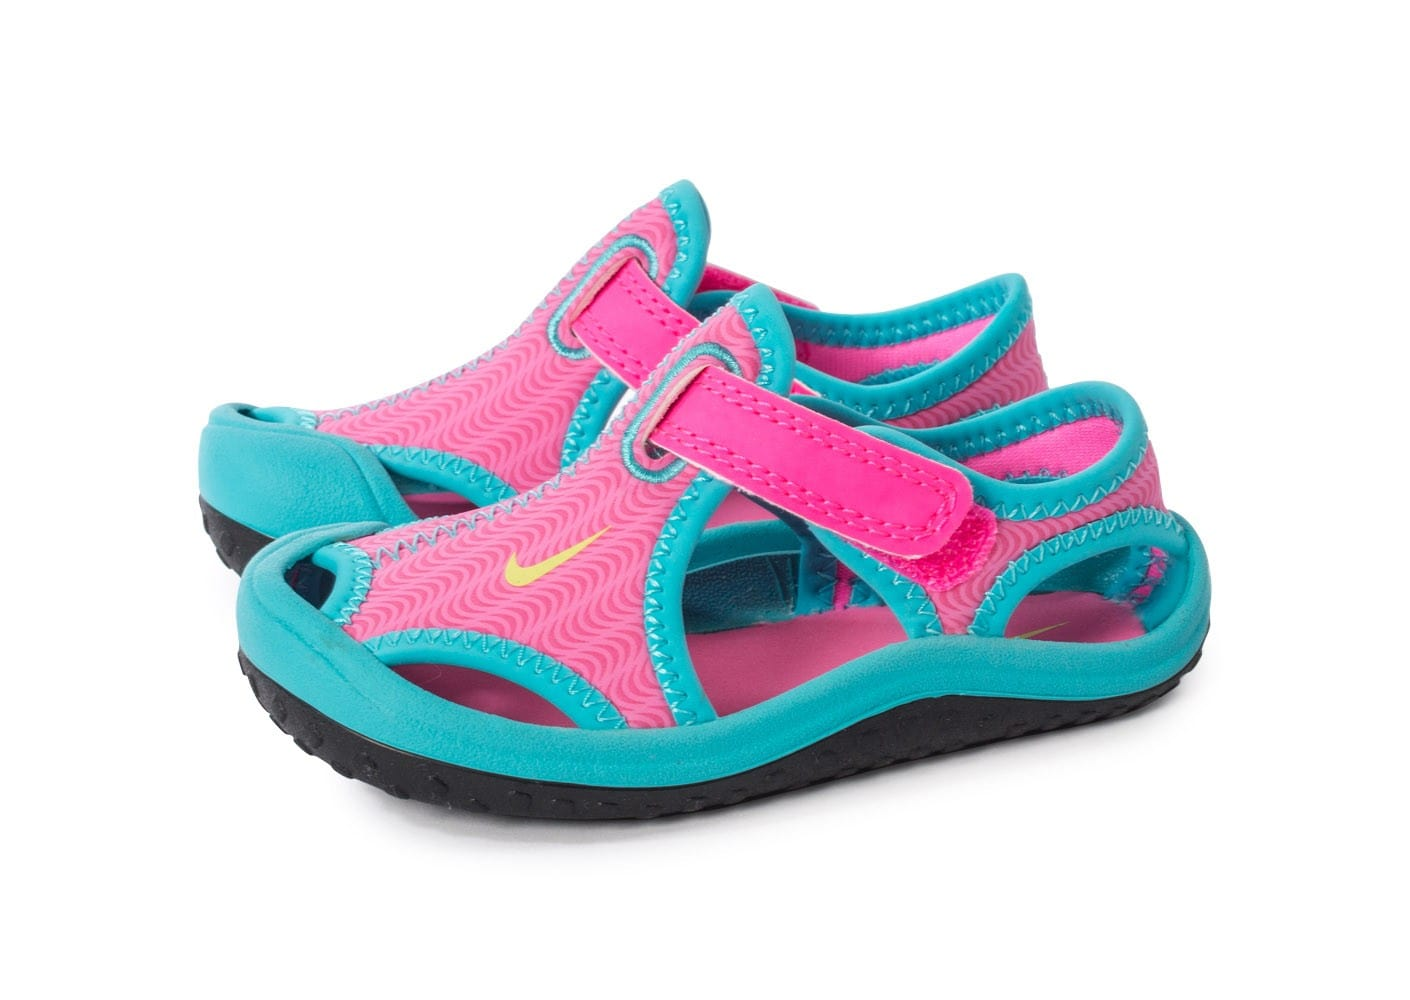 check out d9d02 5a71f ... chaussures nike sunray protect bebe rose vue par paire